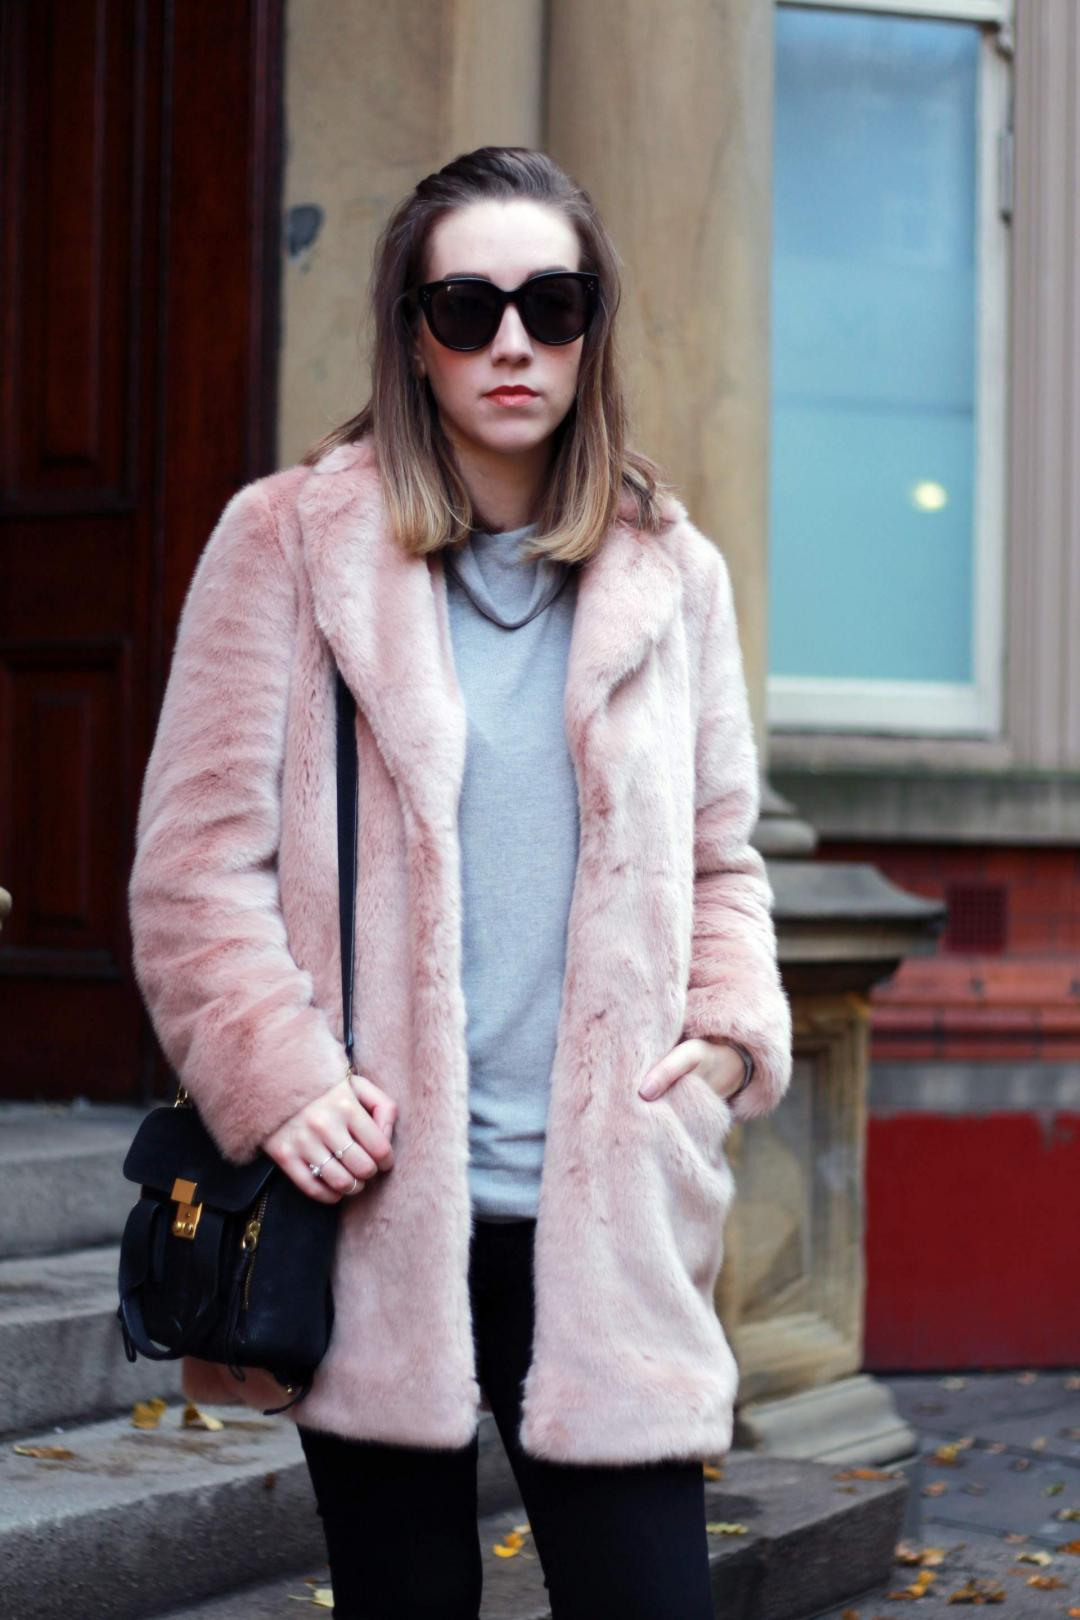 reiss-alba-pink-faux-fur-coat-phillip-lim-pashli-isabel-marant-dicker-boots-street-style-3